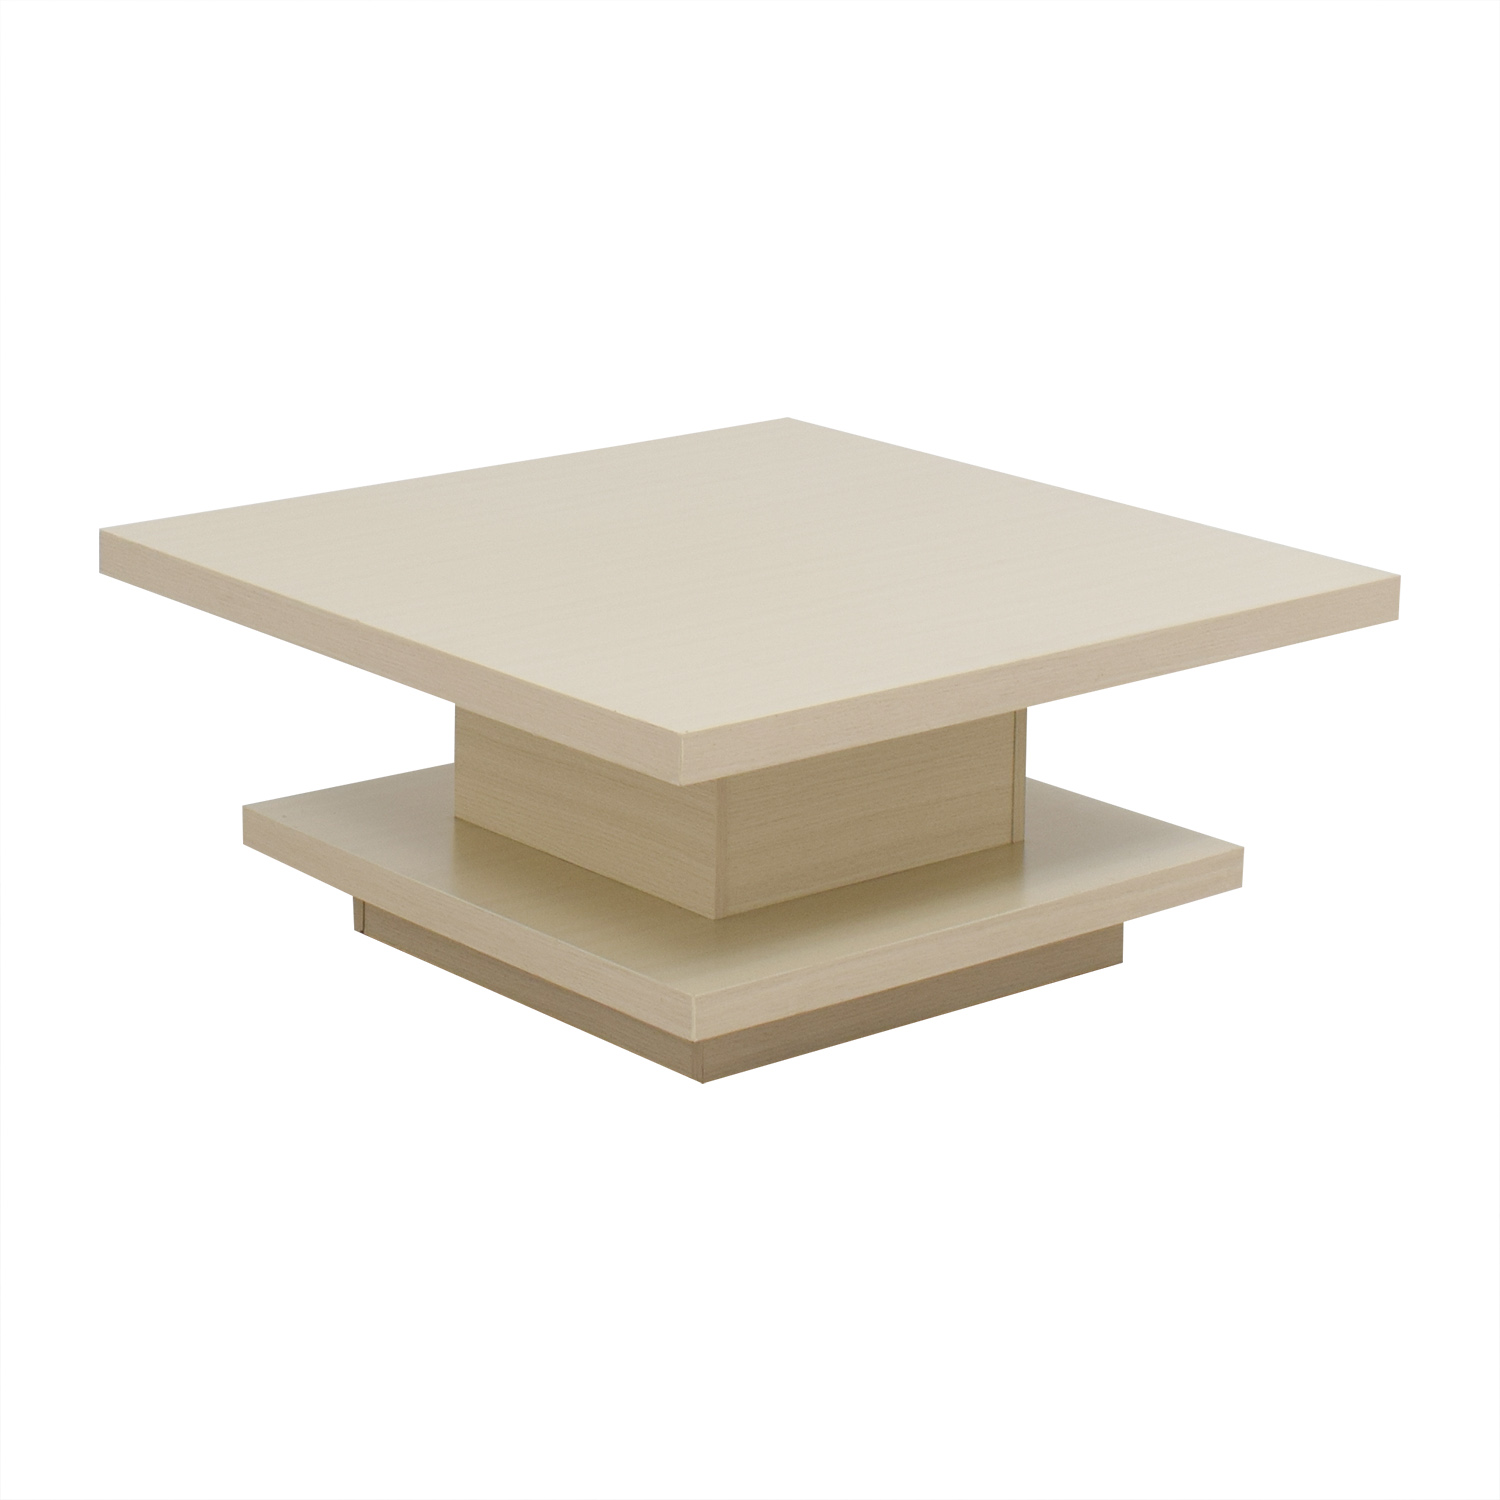 Furniture of America Modern Pagoda Ivory Coffee Table / Coffee Tables